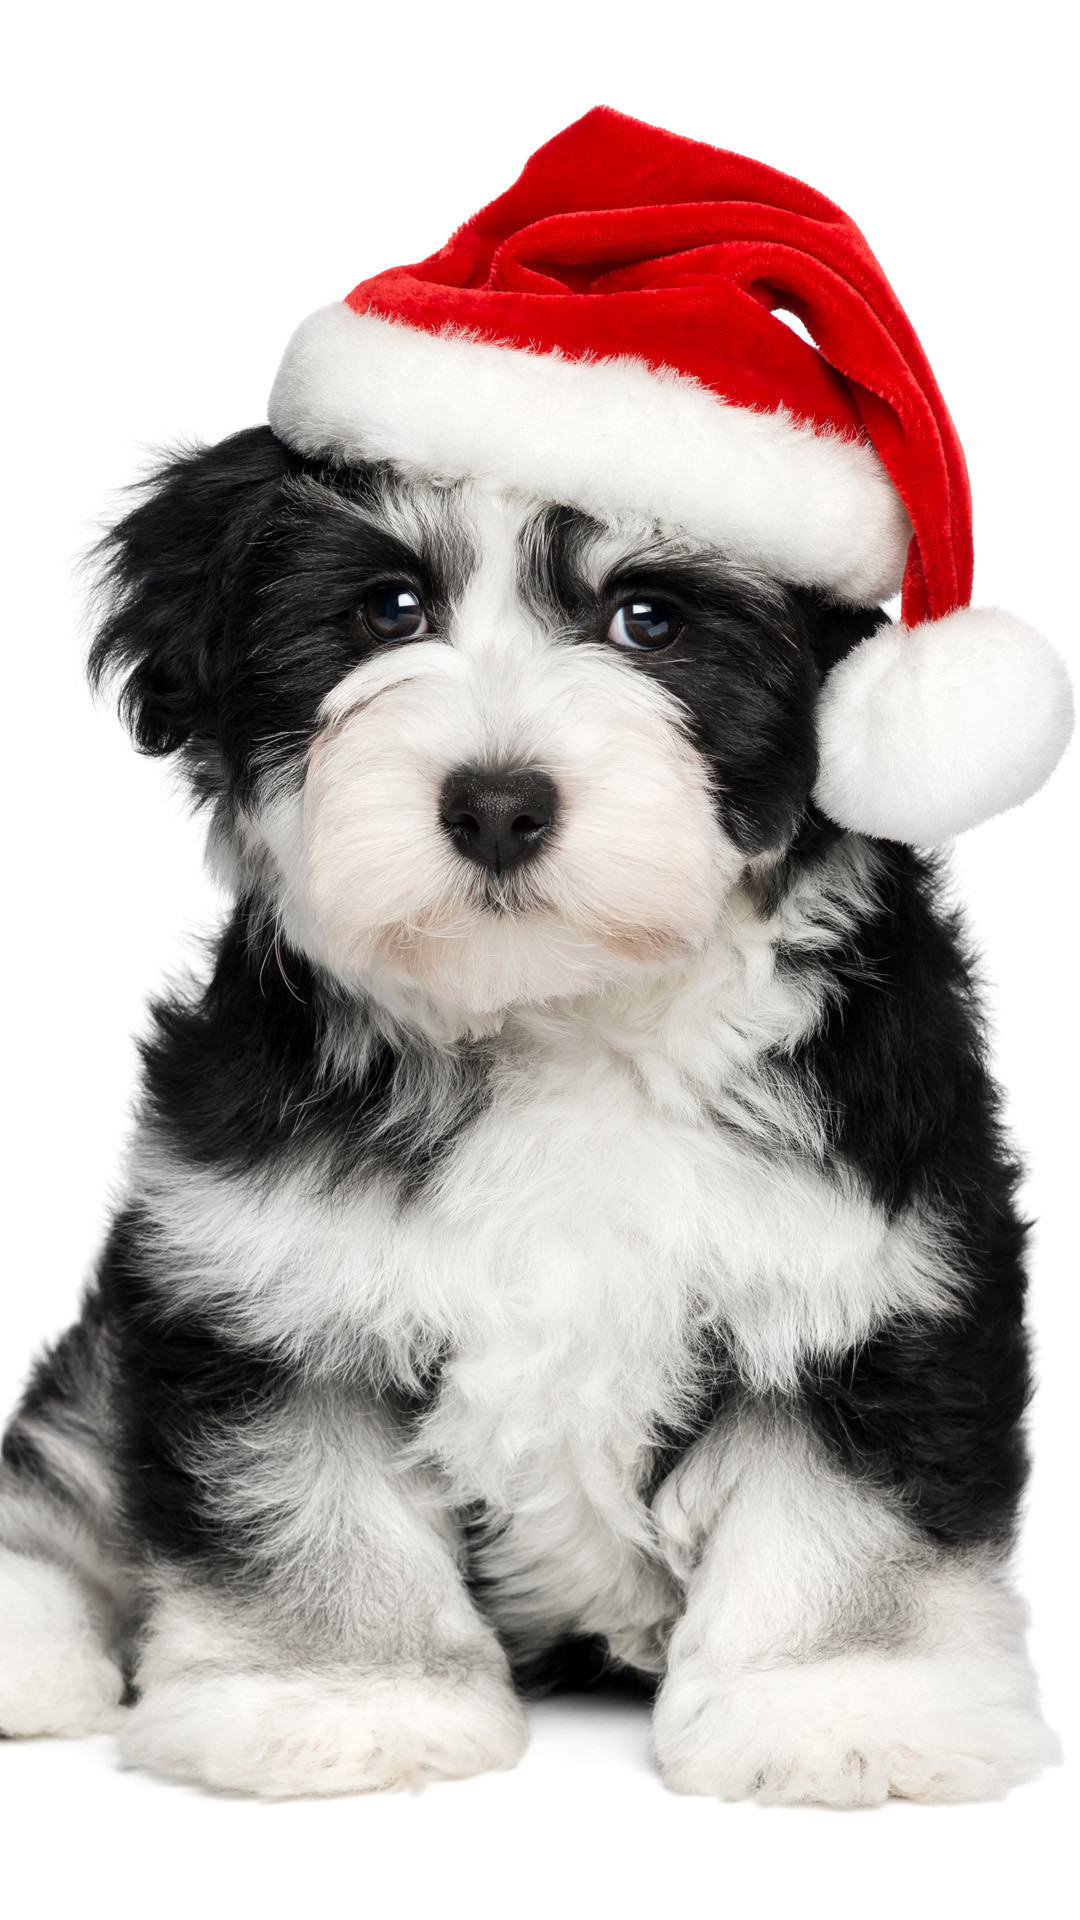 1080x1920 Christmas Puppy Wallpaper Iphone : Christmas wallpaper iphone plus  wallpapersafari